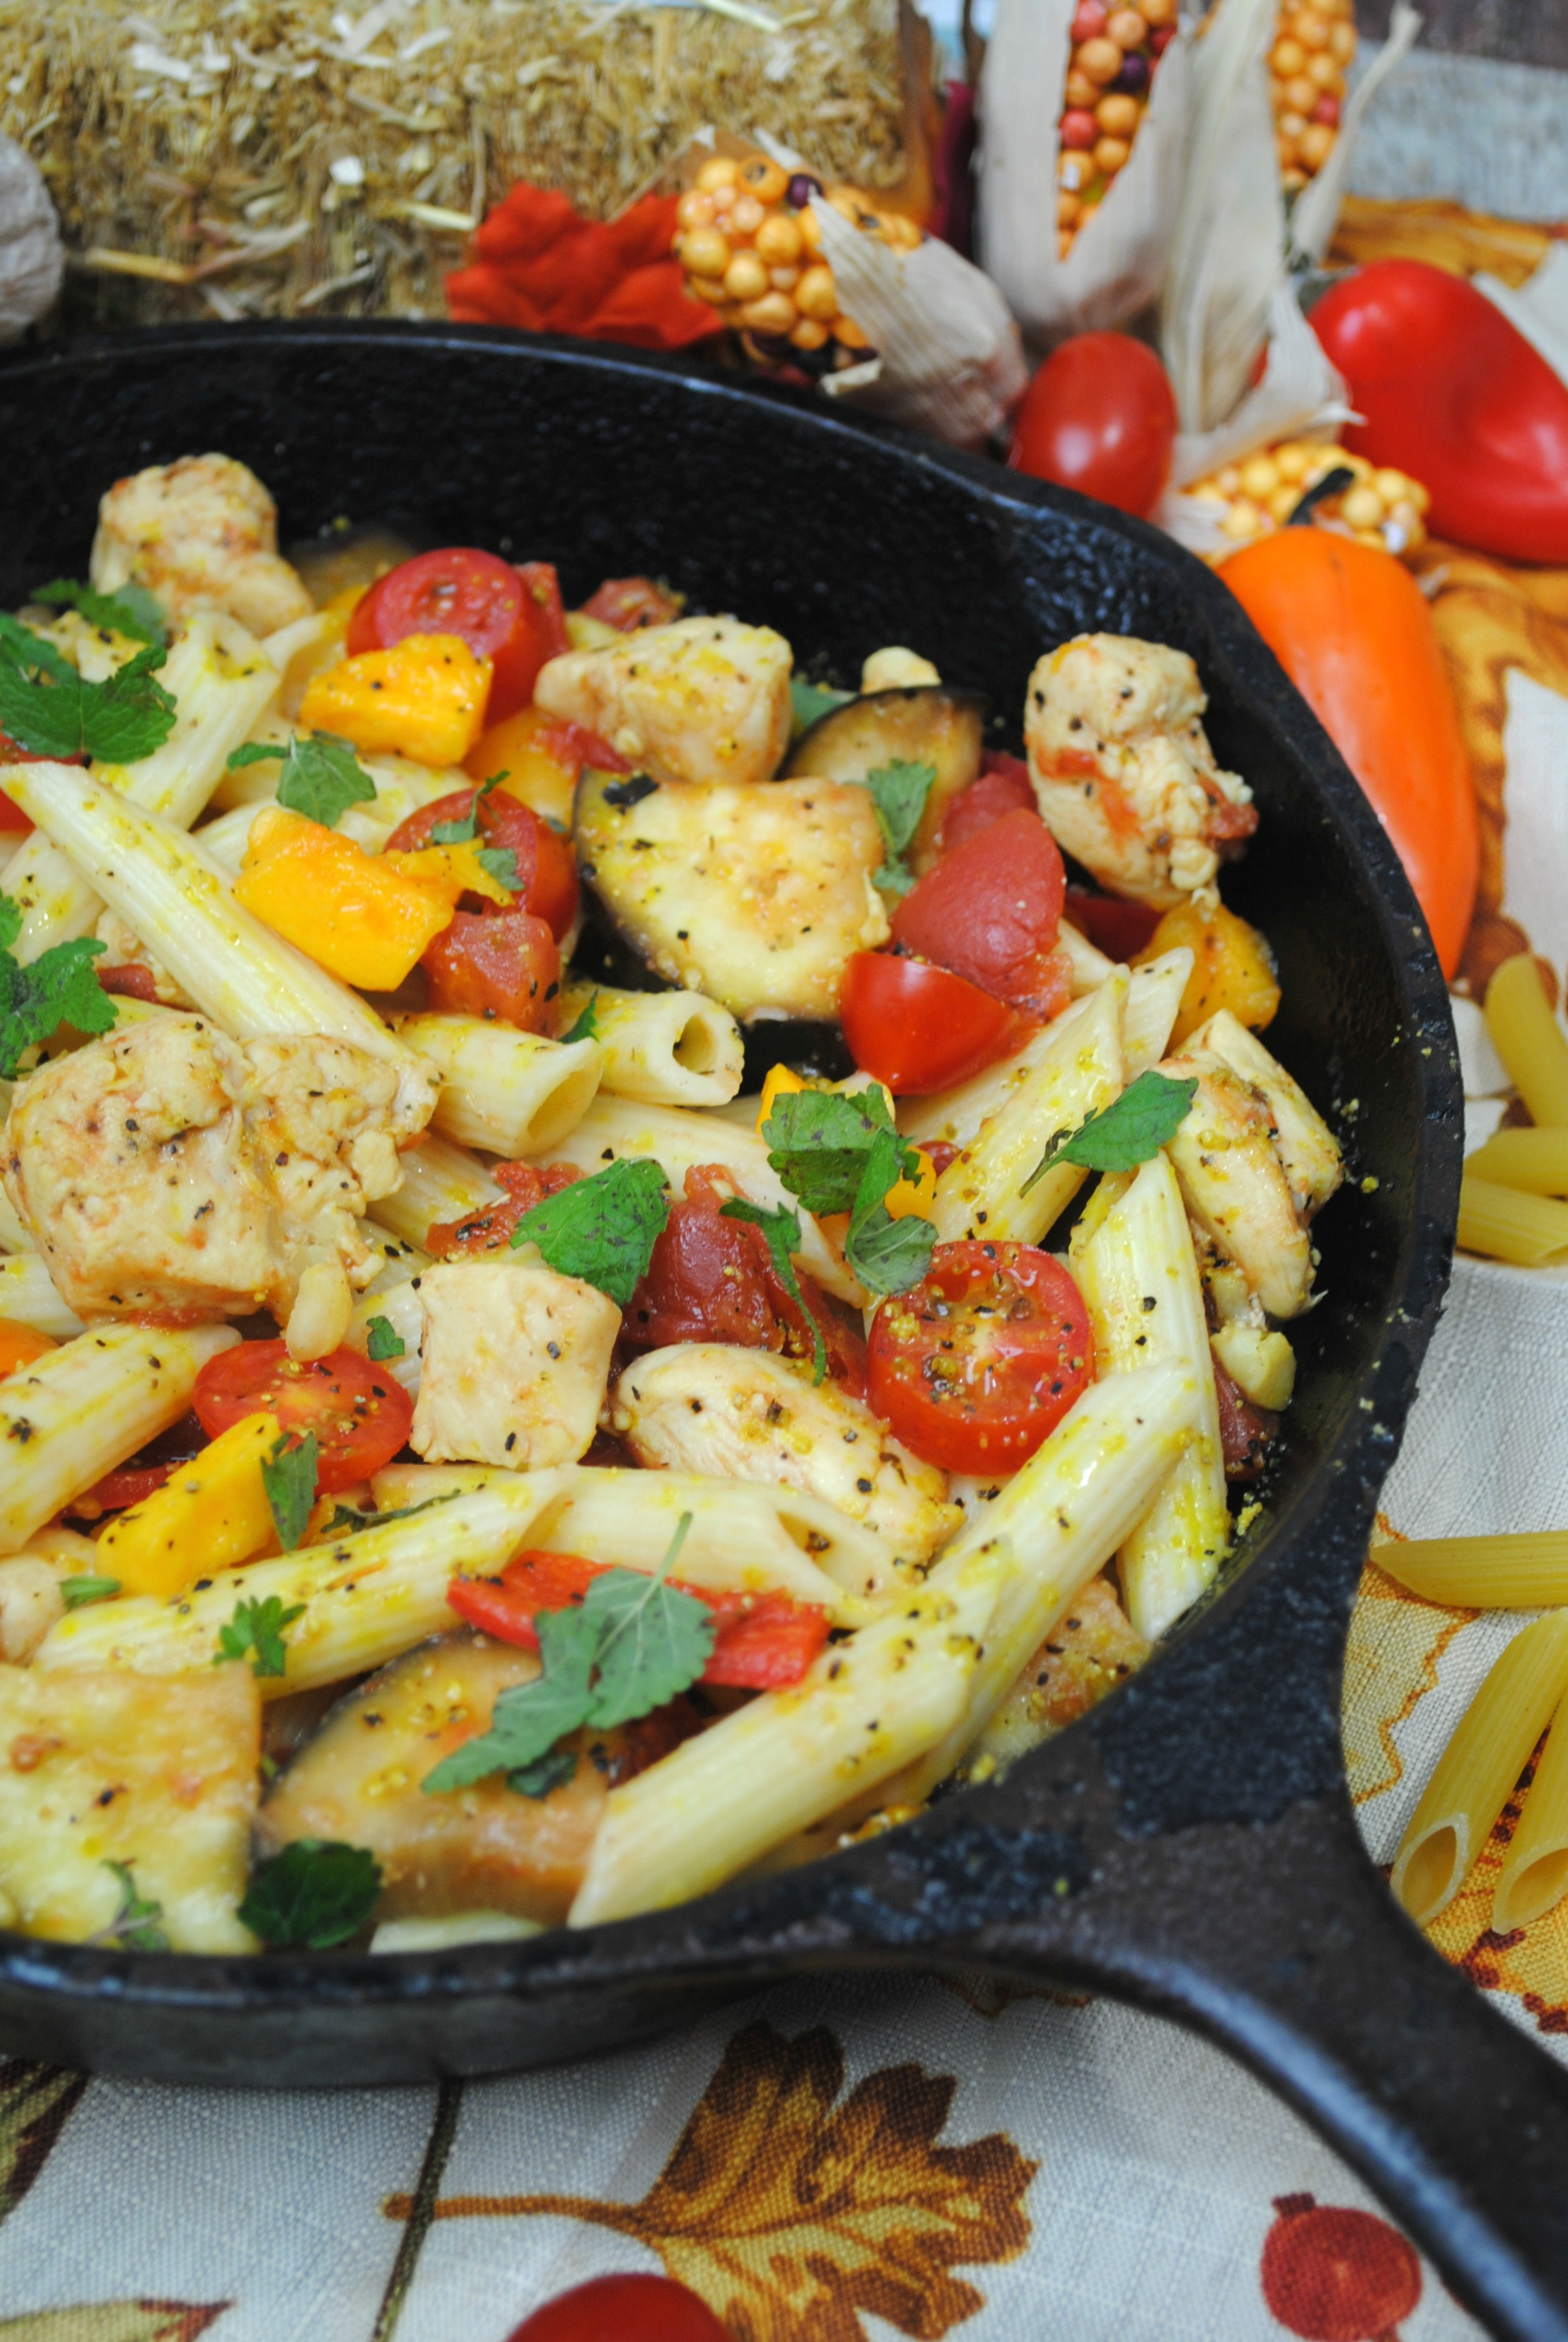 Looking for a simple skillet meal? Skillet meals are great for a quick one pan dinner. This Autumn Vegetables and Pasta Skillet Meal brings together all the flavors of fresh fall vegetables with the simplicity of skillet meals.